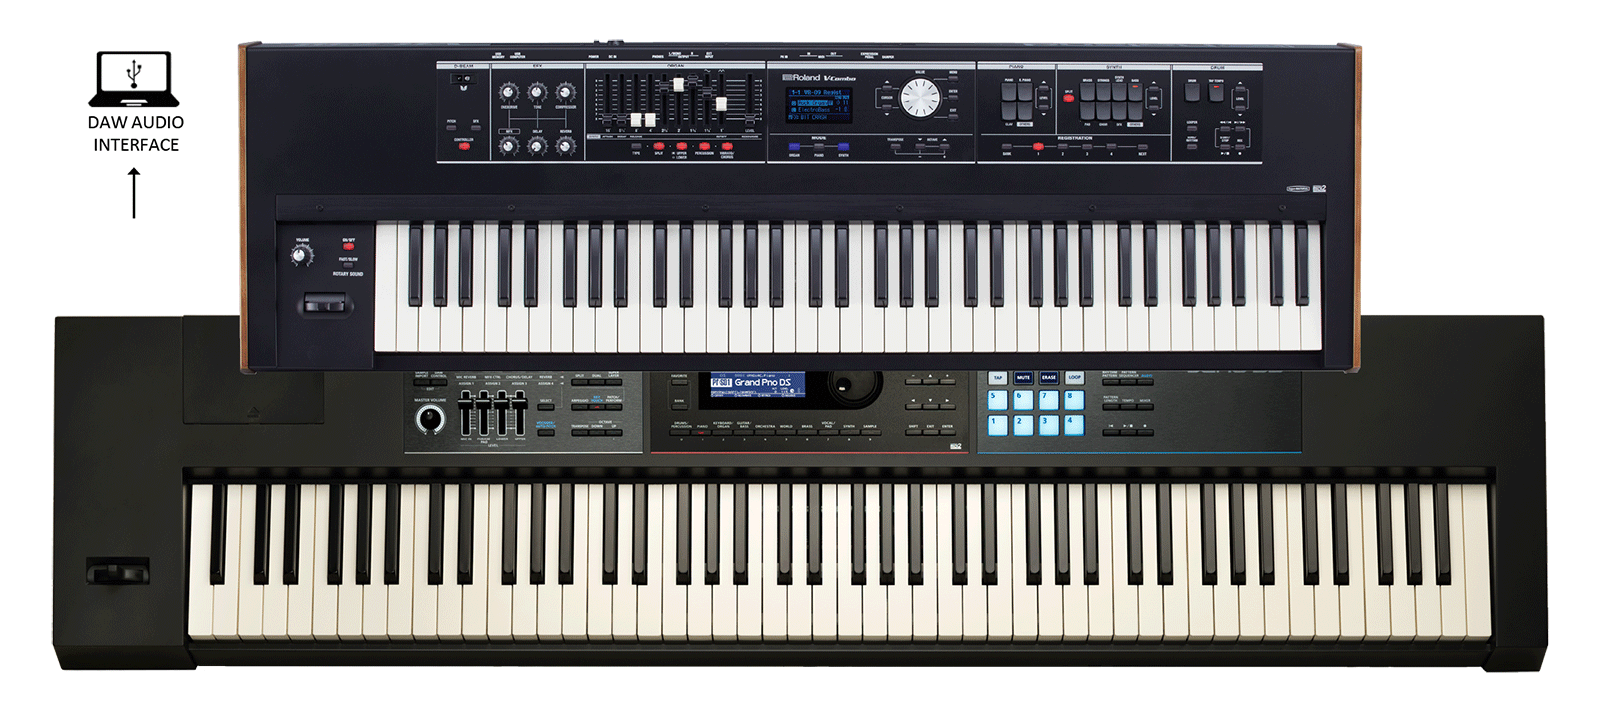 VR-730 & JUNO-DS88 Keyboards